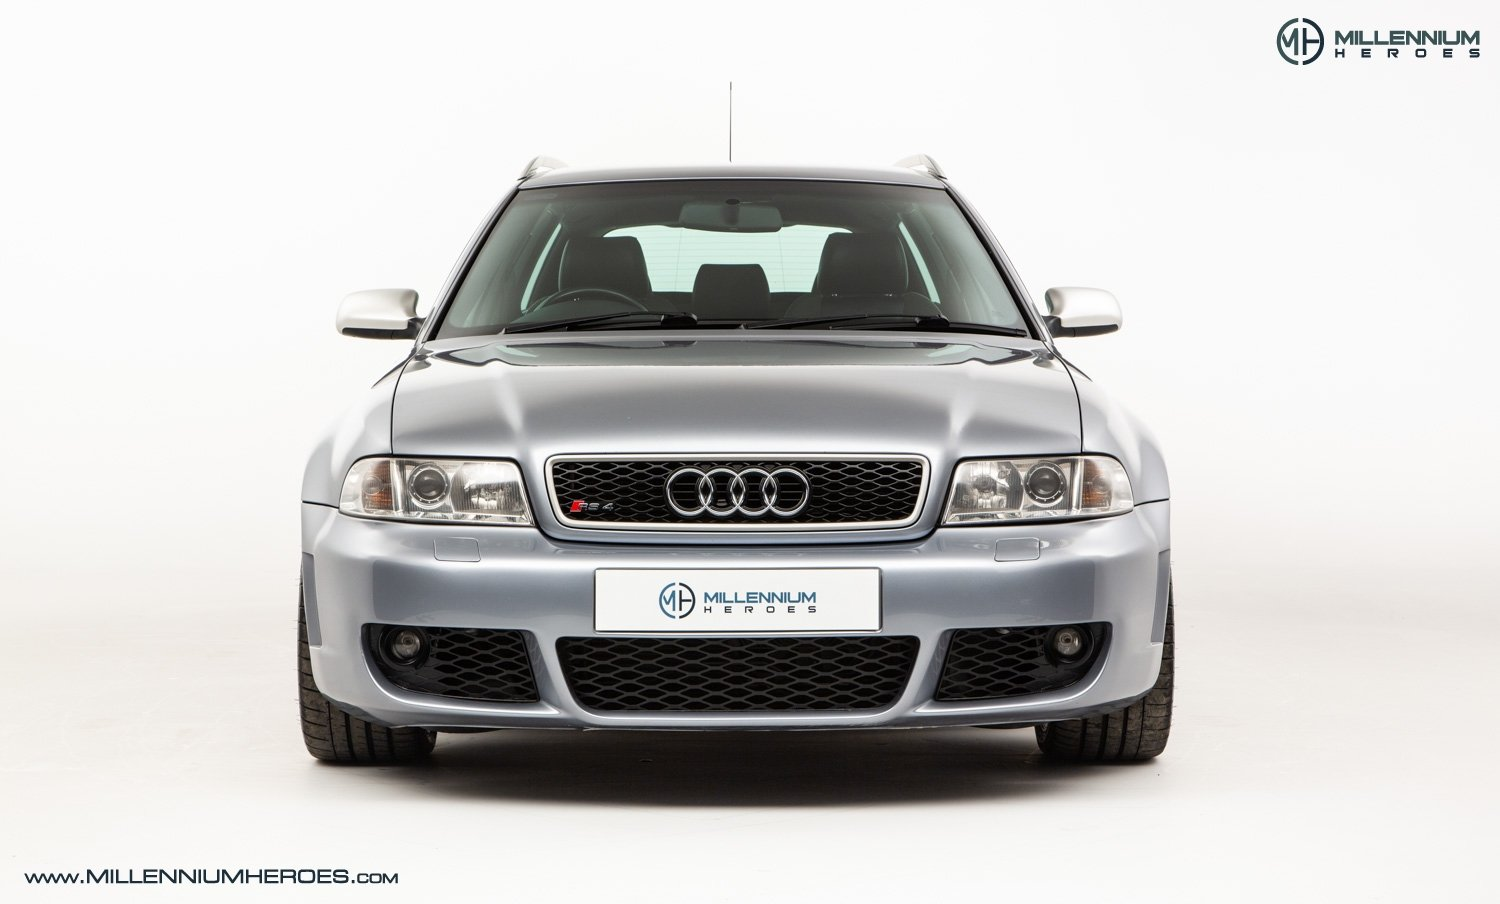 2001 AUDI B5 RS4 AVANT // 95K MILES // AVUS SILVER For Sale (picture 4 of 28)